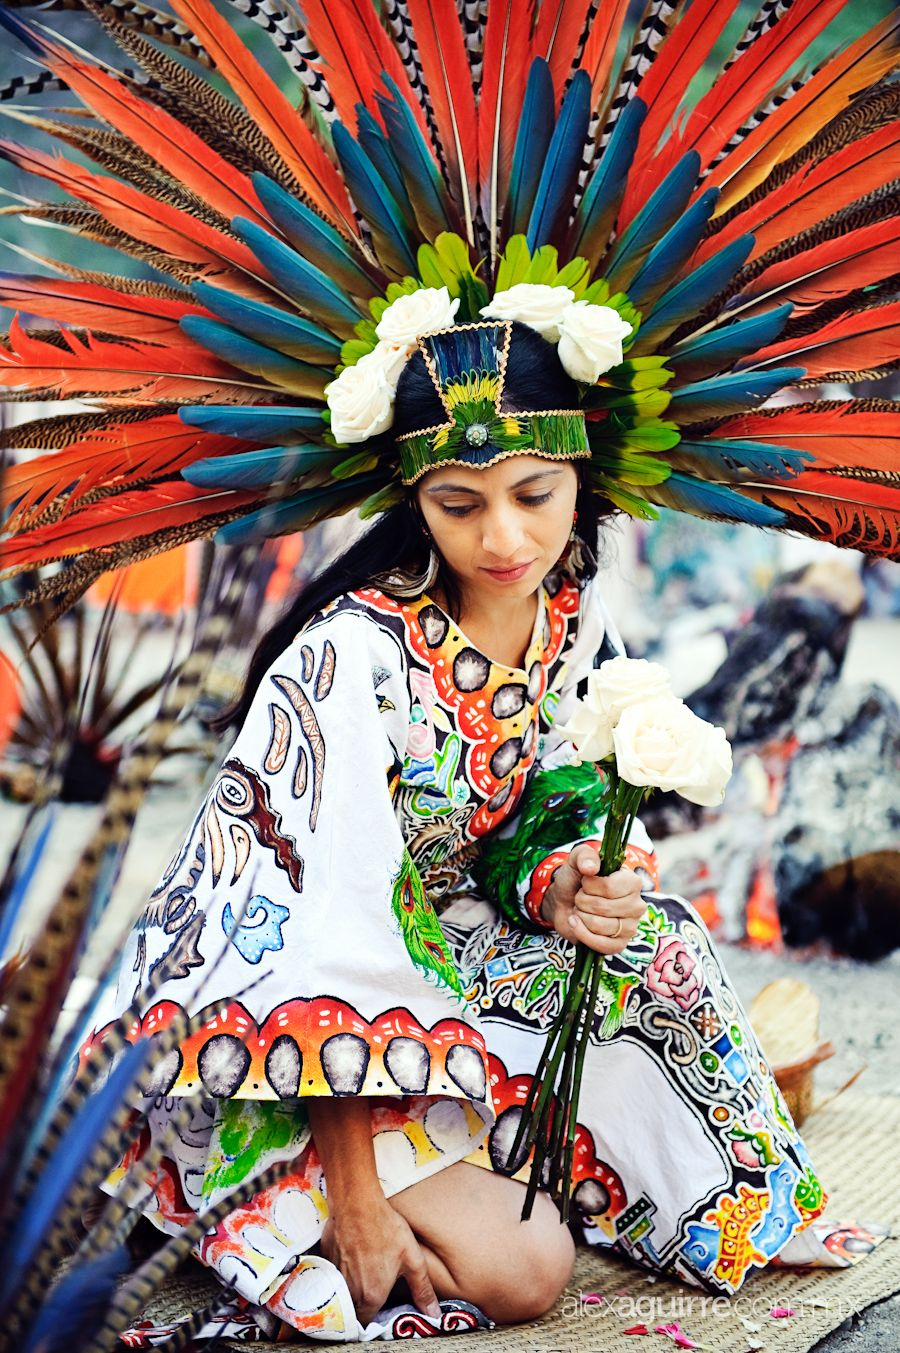 A Mexican Bride In Traditional Feather Headdress Via